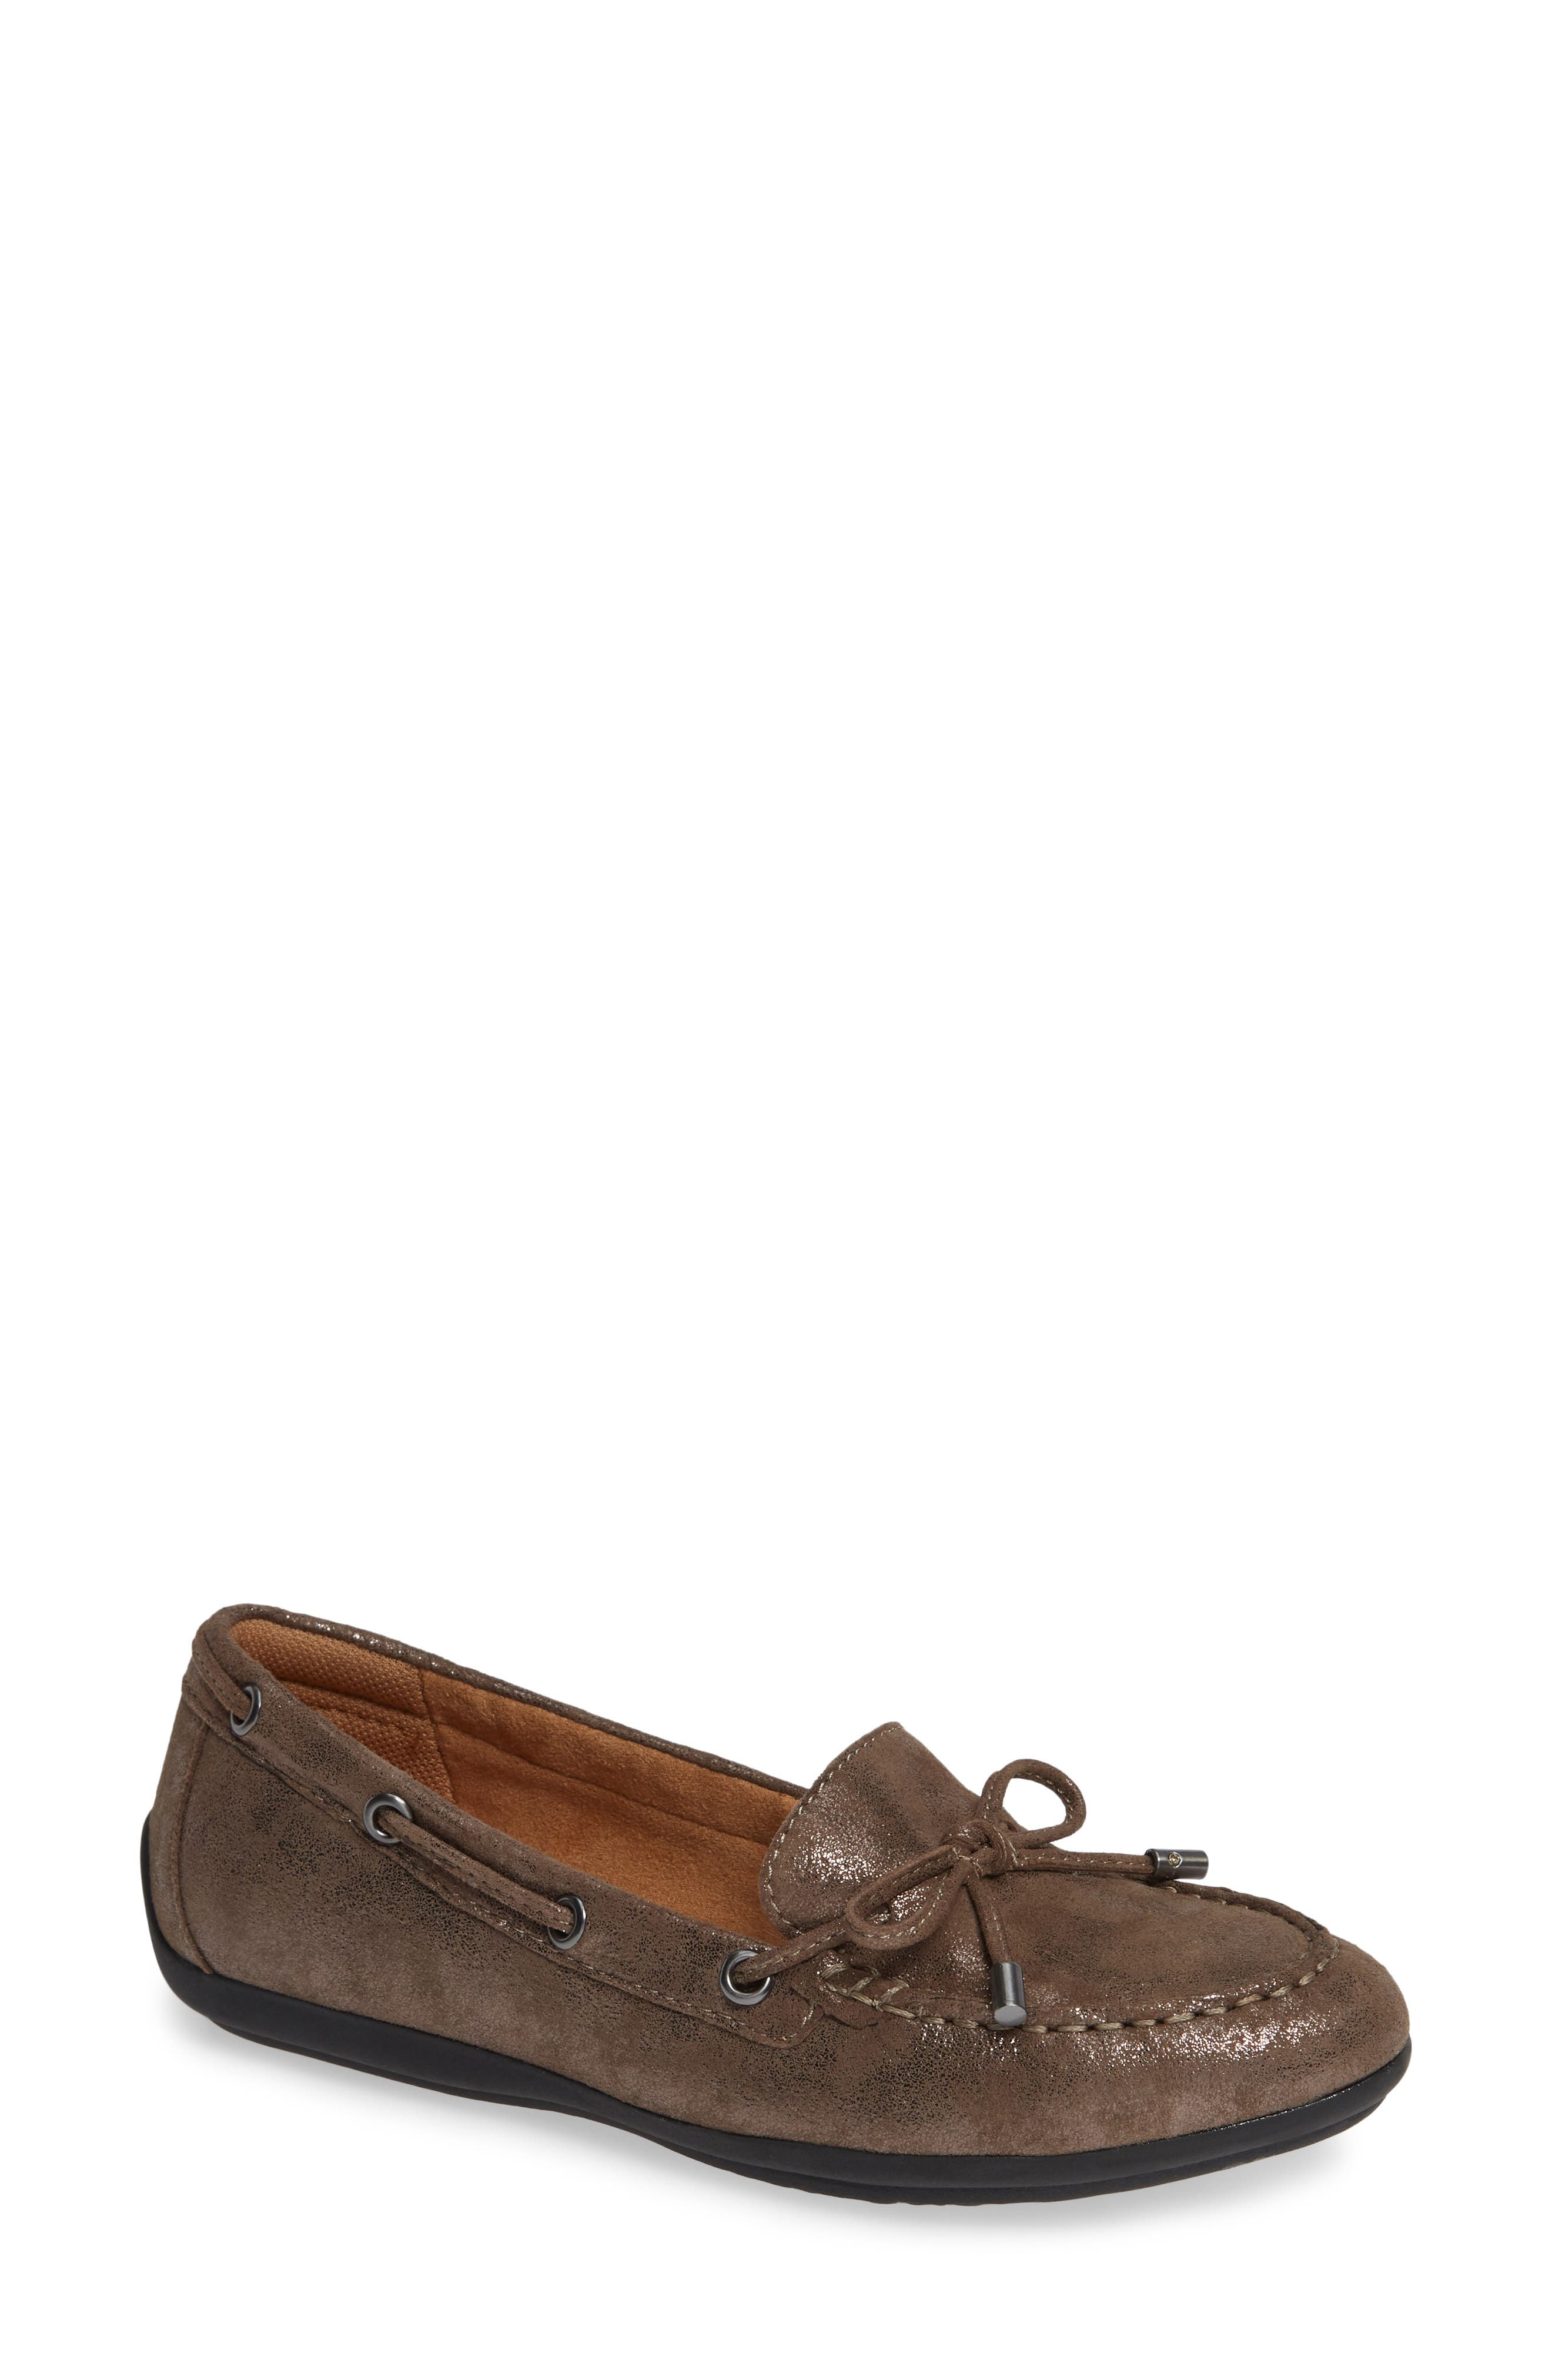 Comfortiva Mindy Loafer, Grey